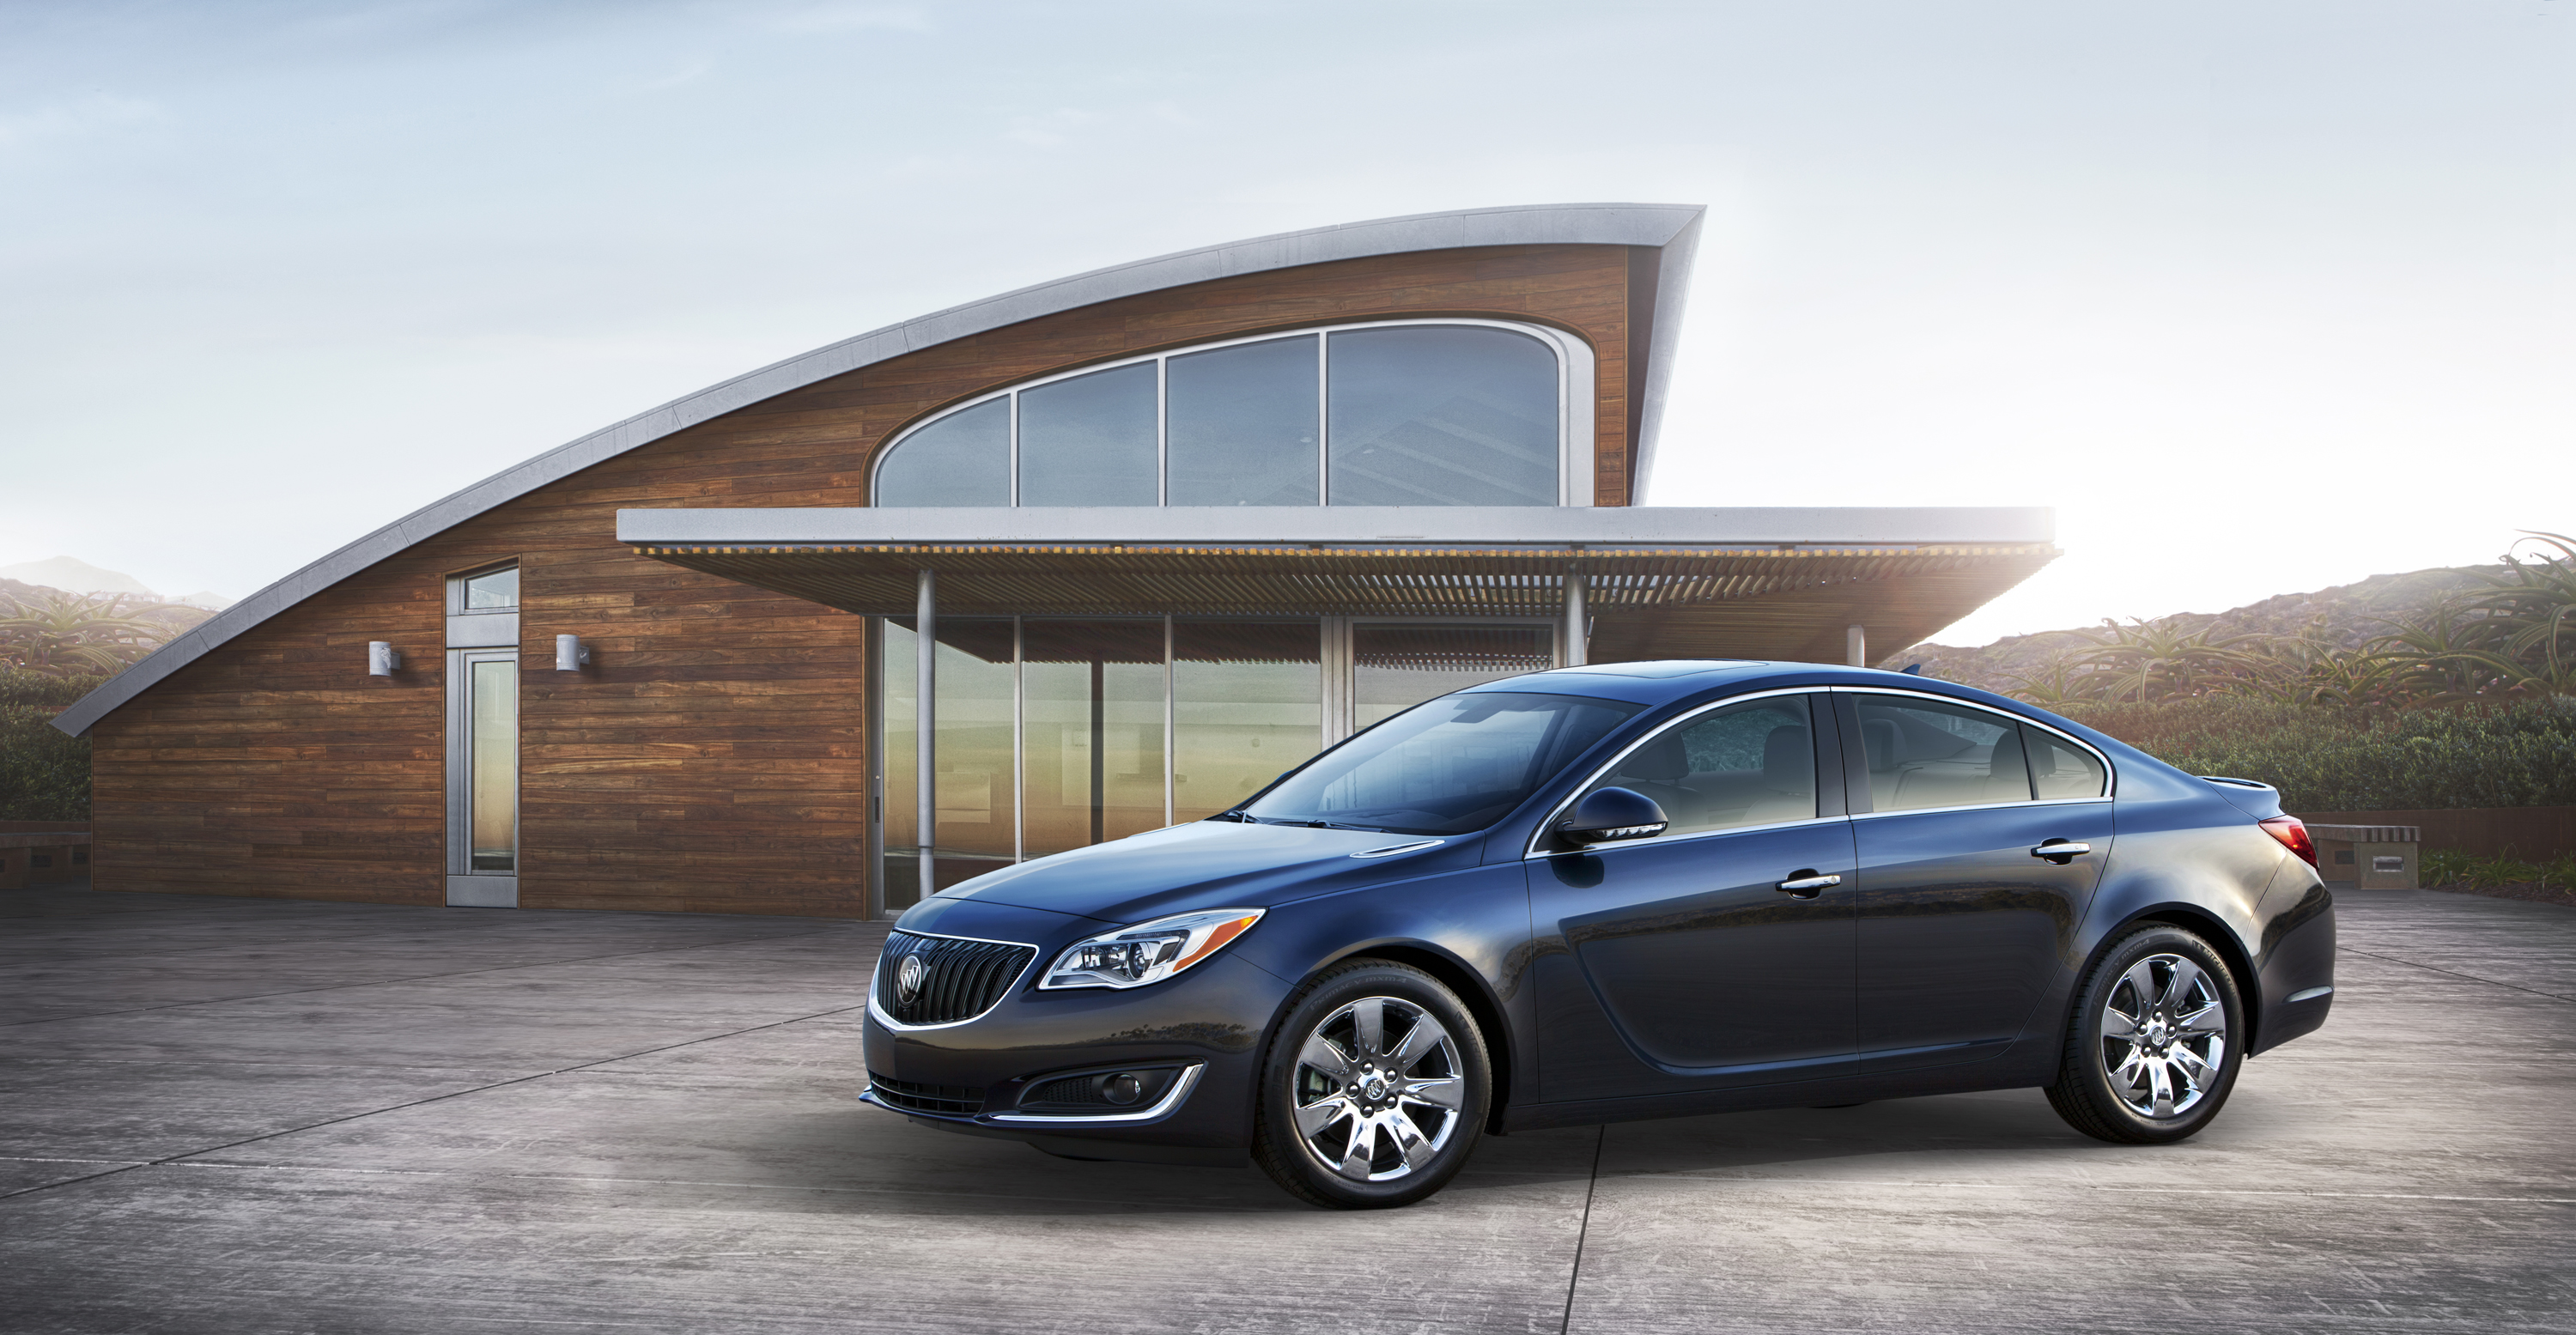 2014 Buick Regal Infused with New Technology